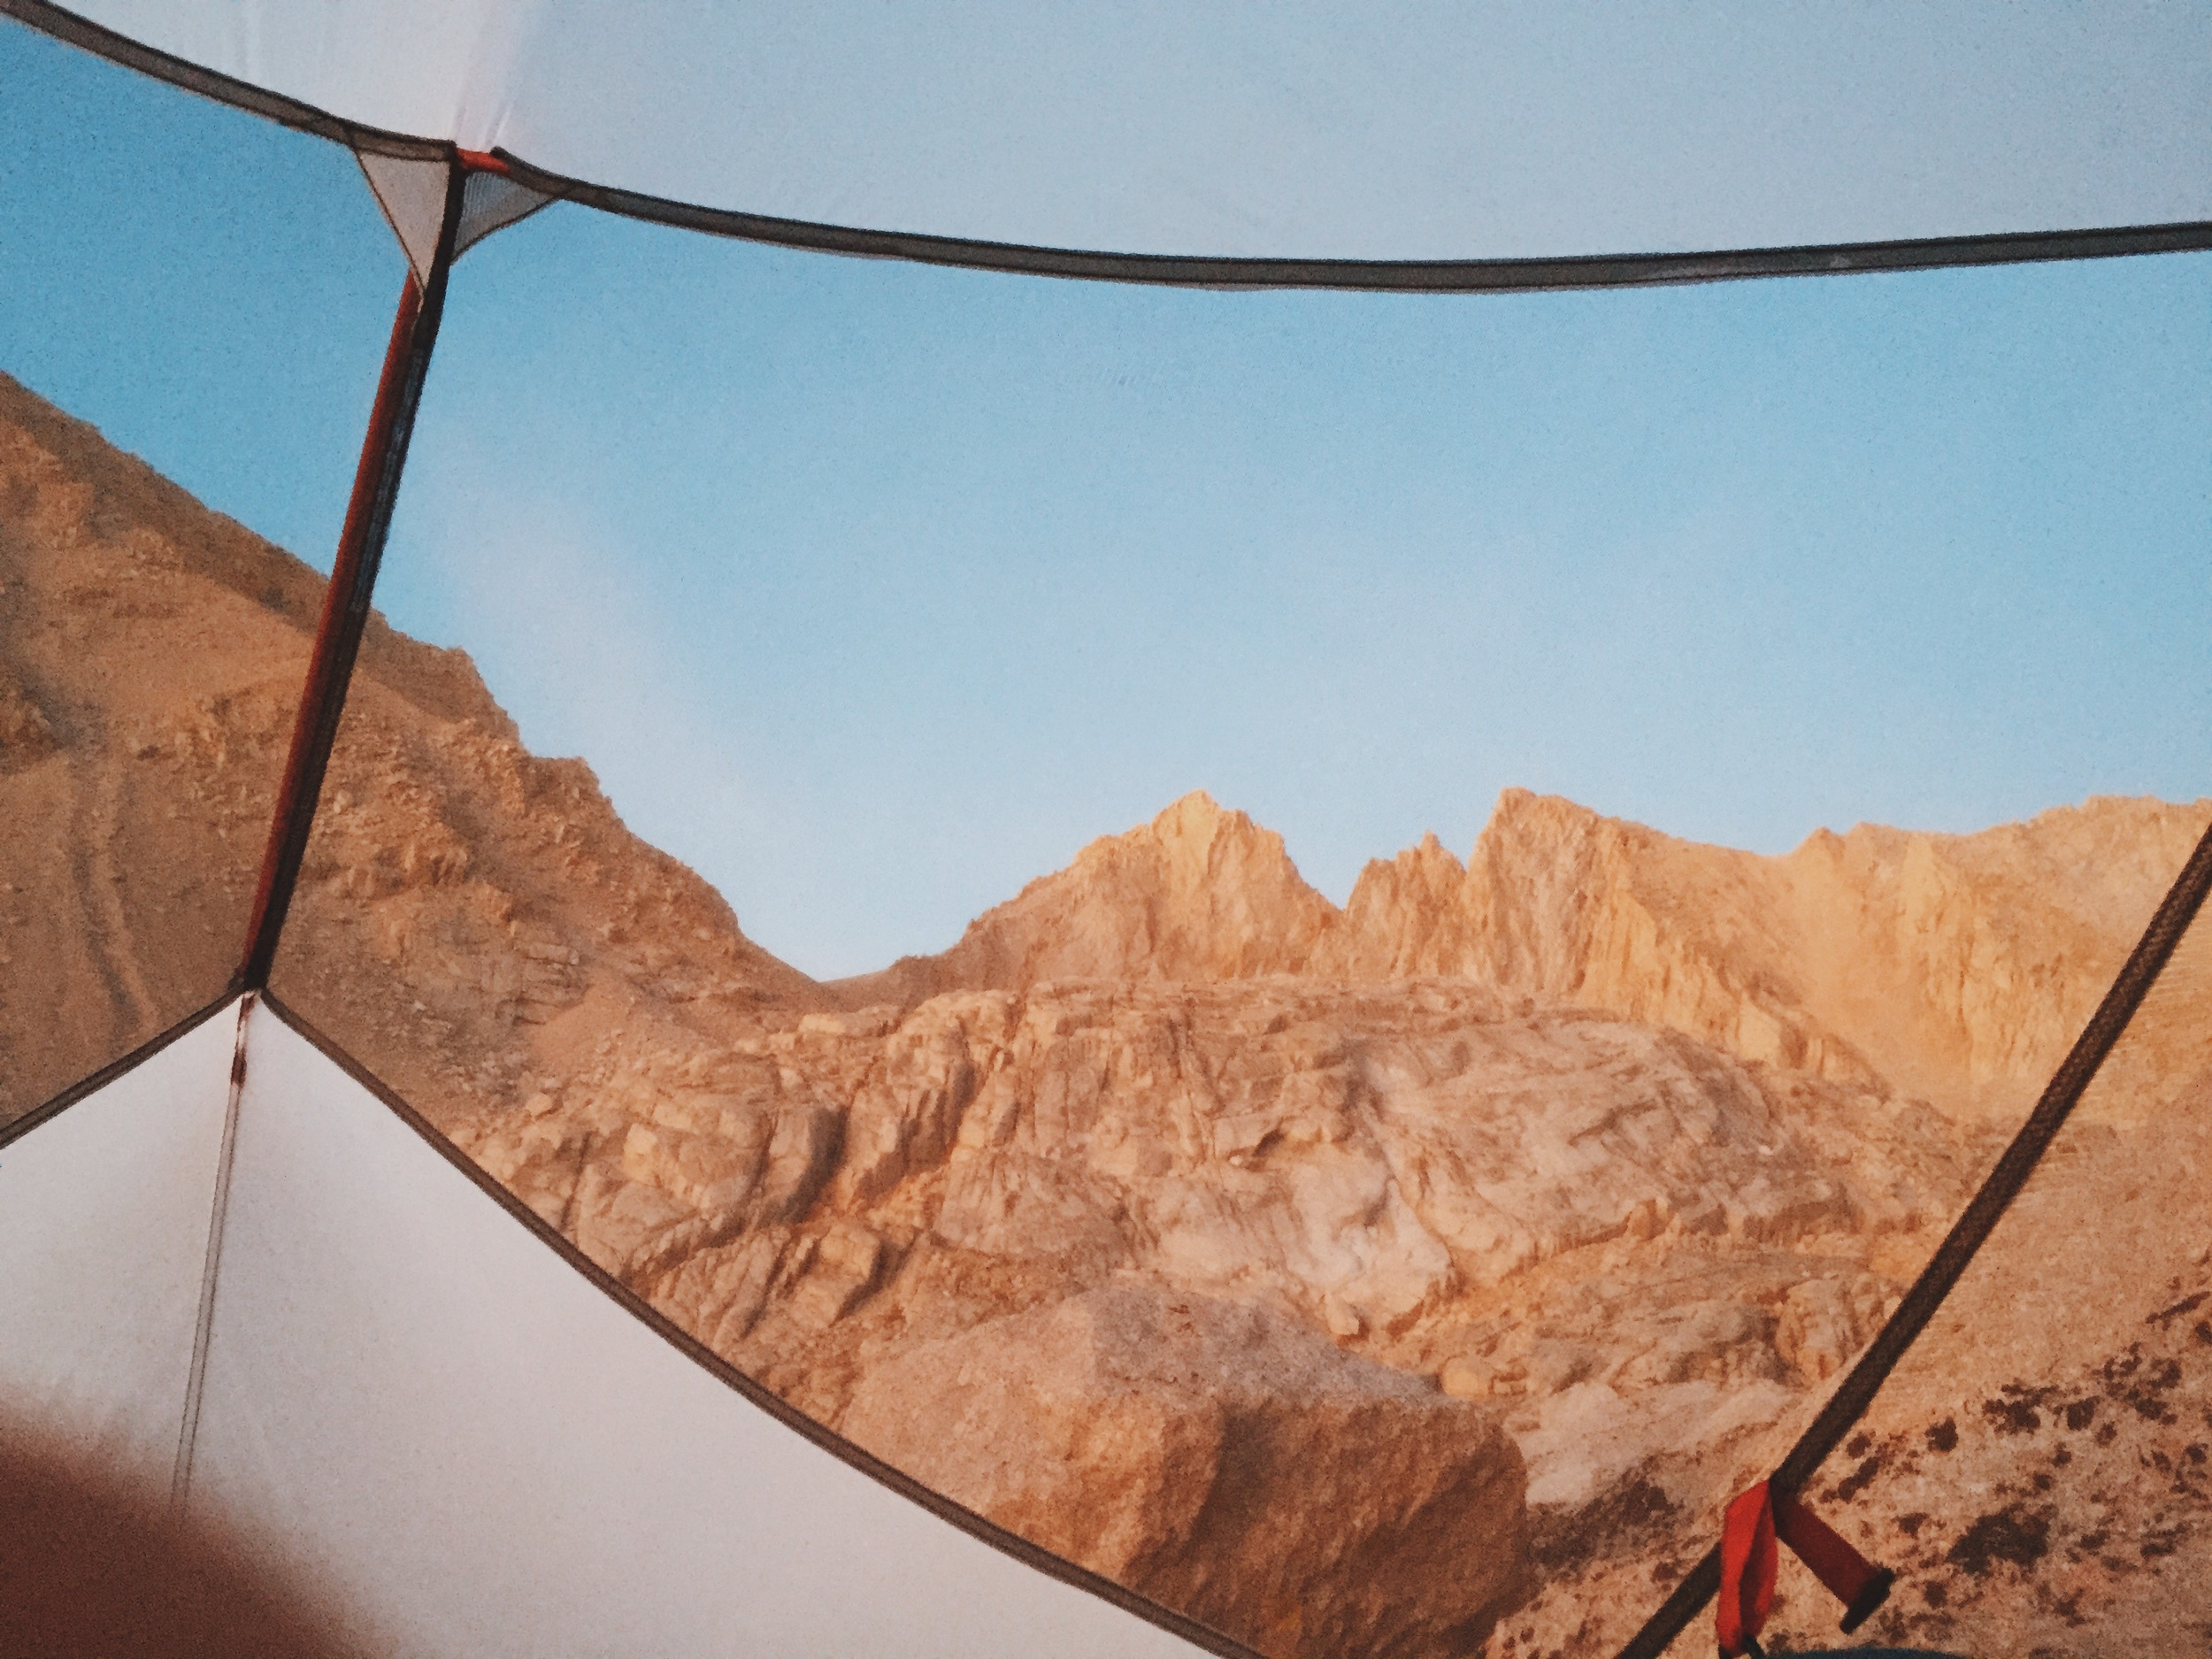 The view of sunrise from our tent on our last morning on the trail.